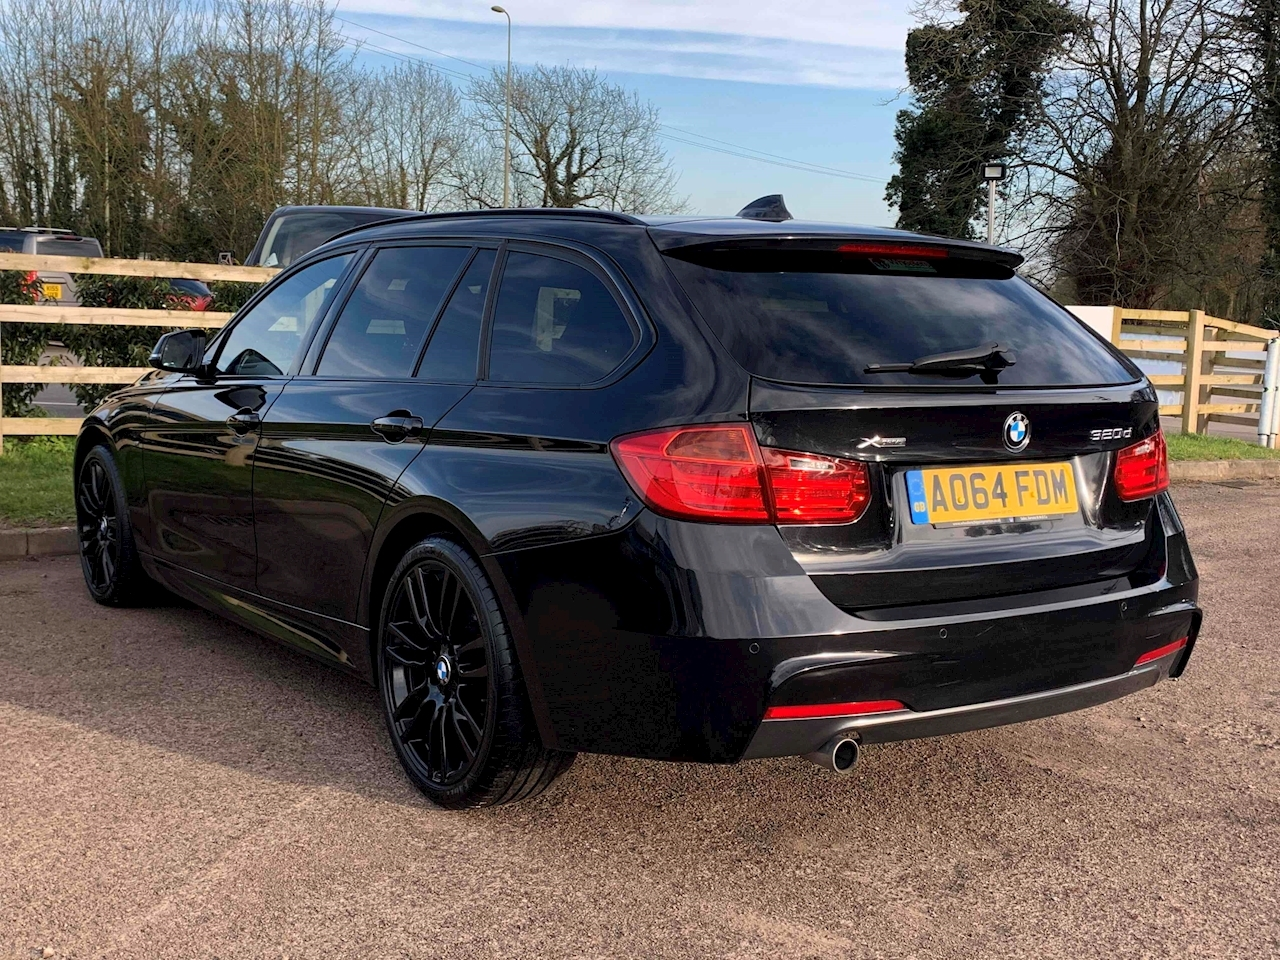 BMW 3 Series 320D Xdrive M Sport Touring Estate 2.0 Automatic Diesel